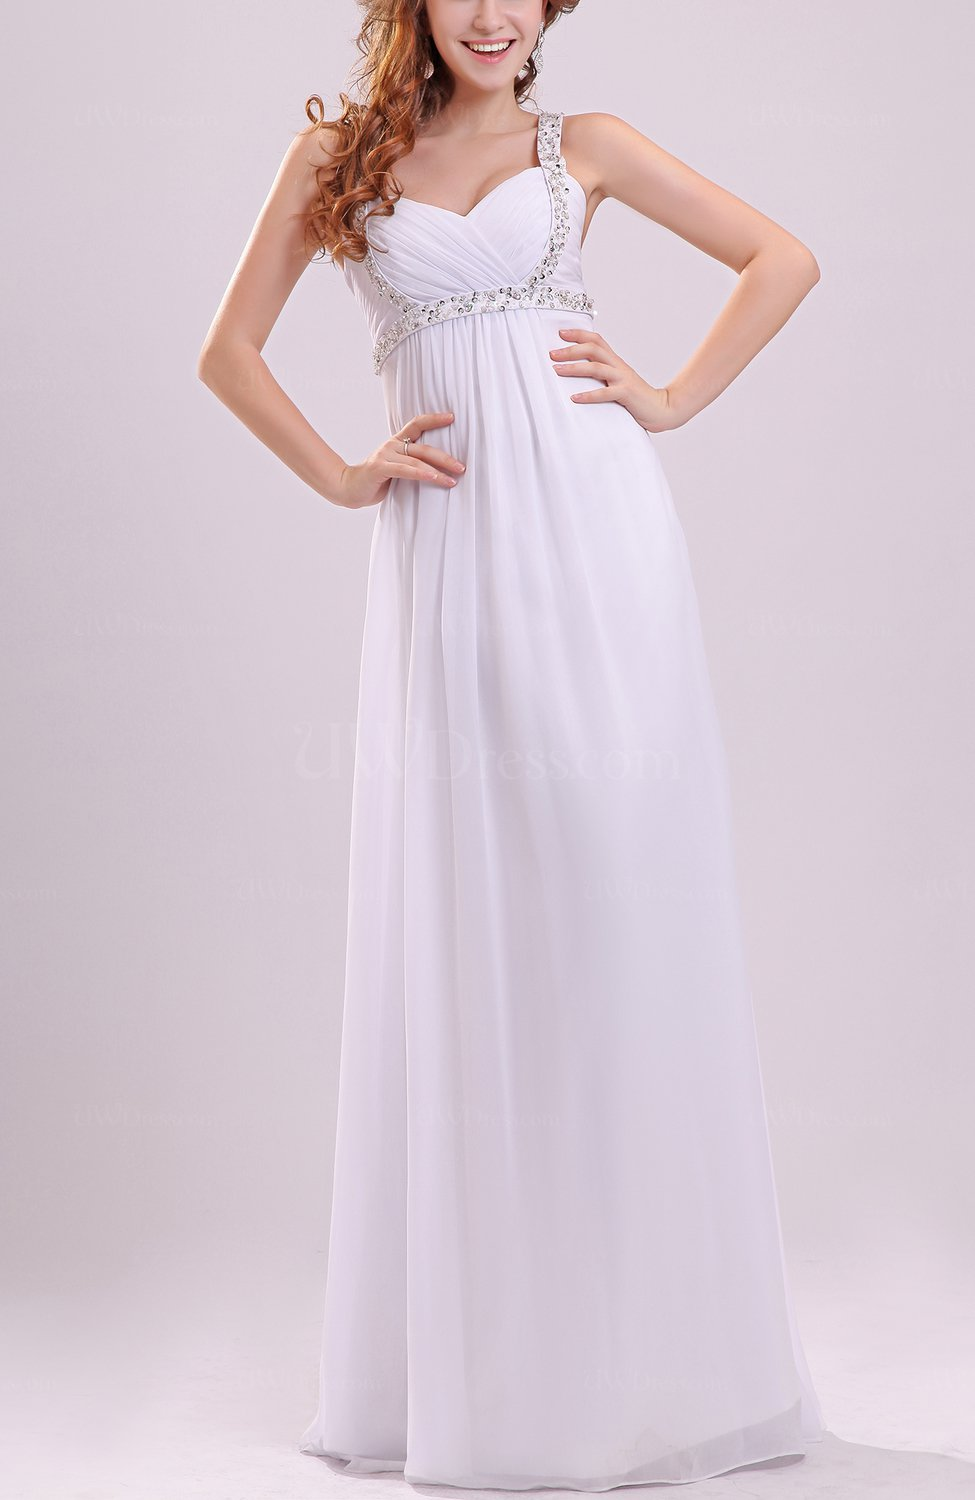 White Simple Beach Column Sweetheart Sleeveless Floor